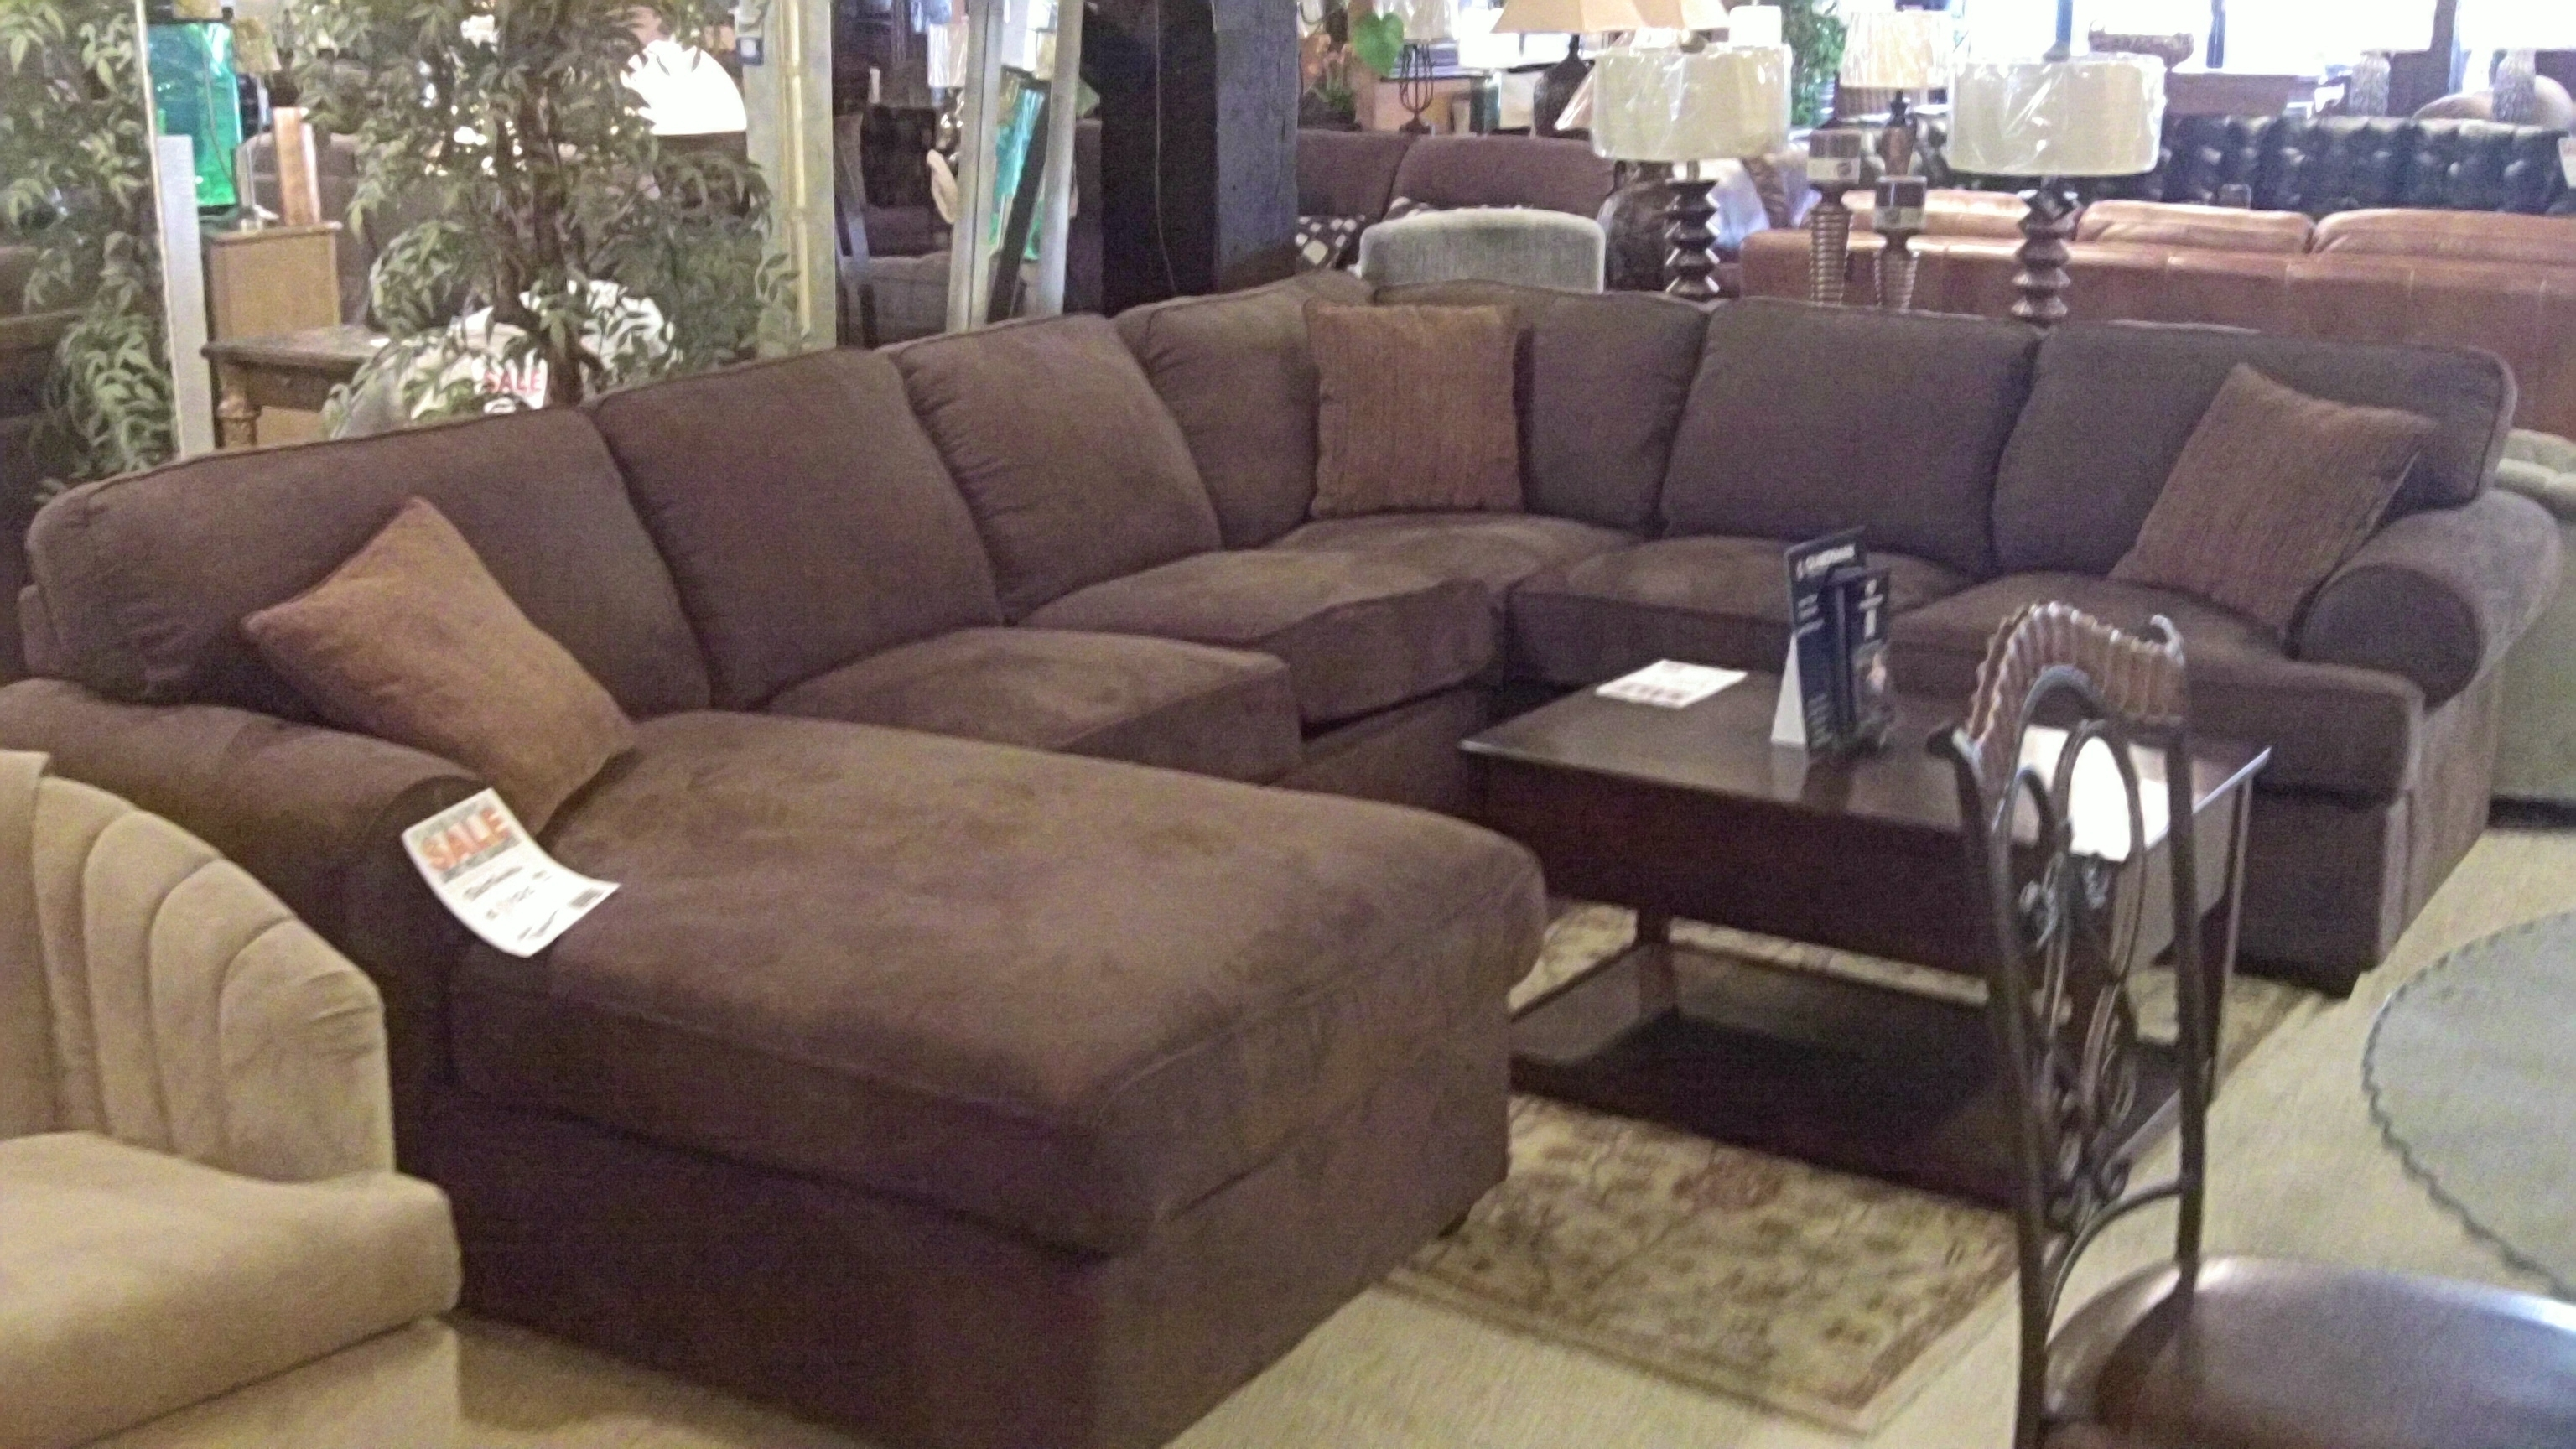 New Down Filled Sofas And Sectionals 53 About Remodel Gray Modular with Down Filled Sofas